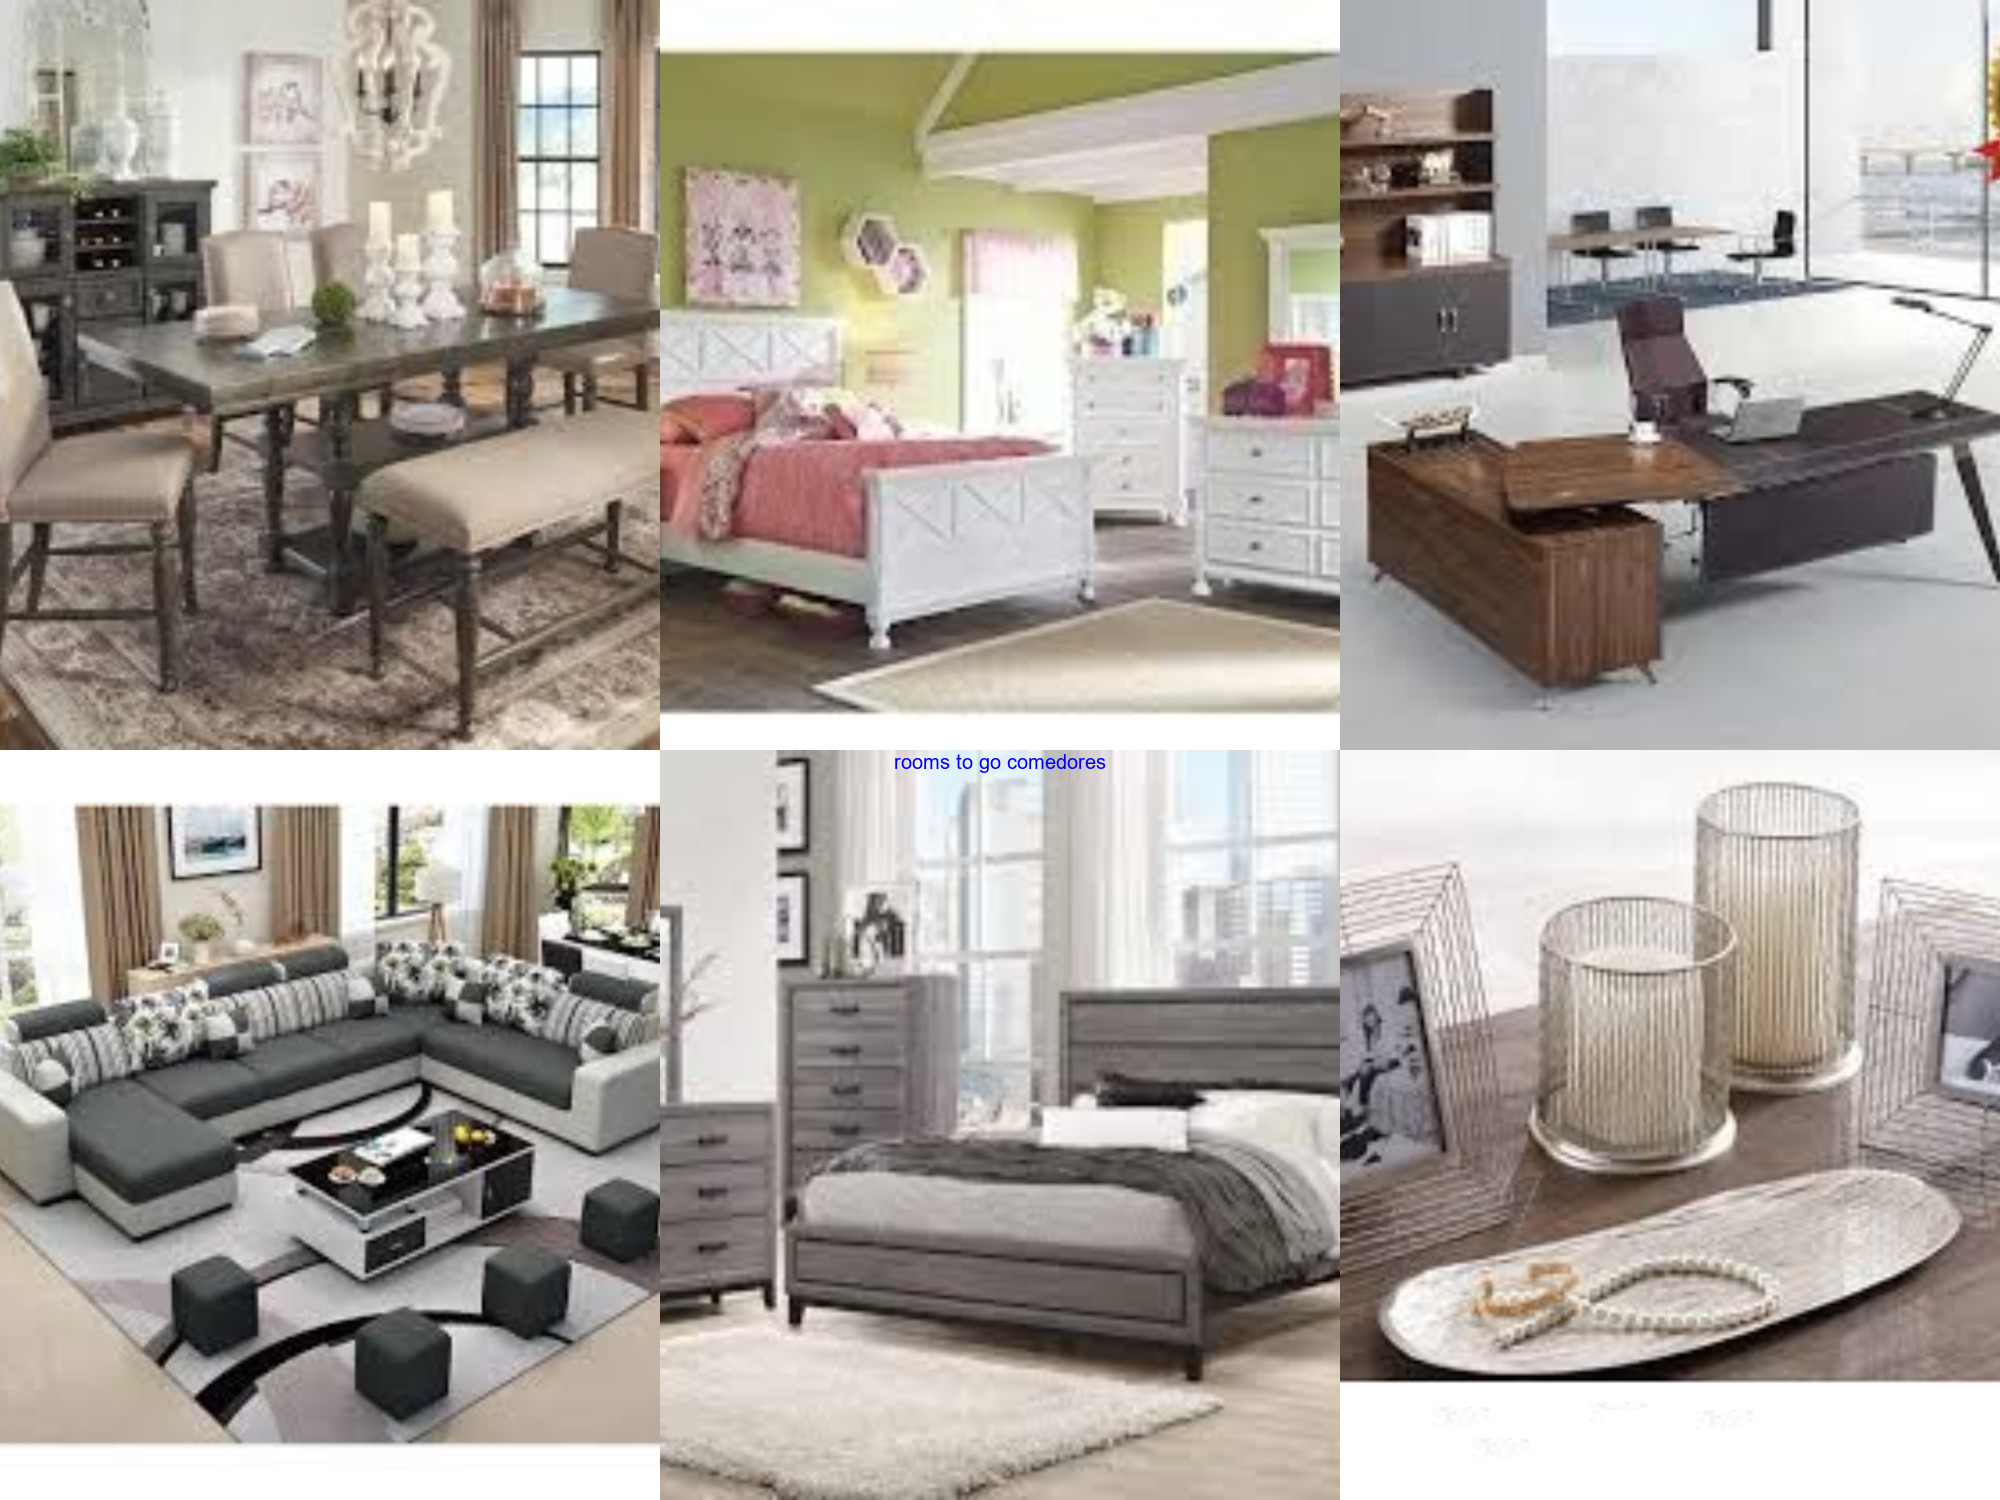 Rooms To Go Comedores Furniture Prices Furniture Reviews Furniture